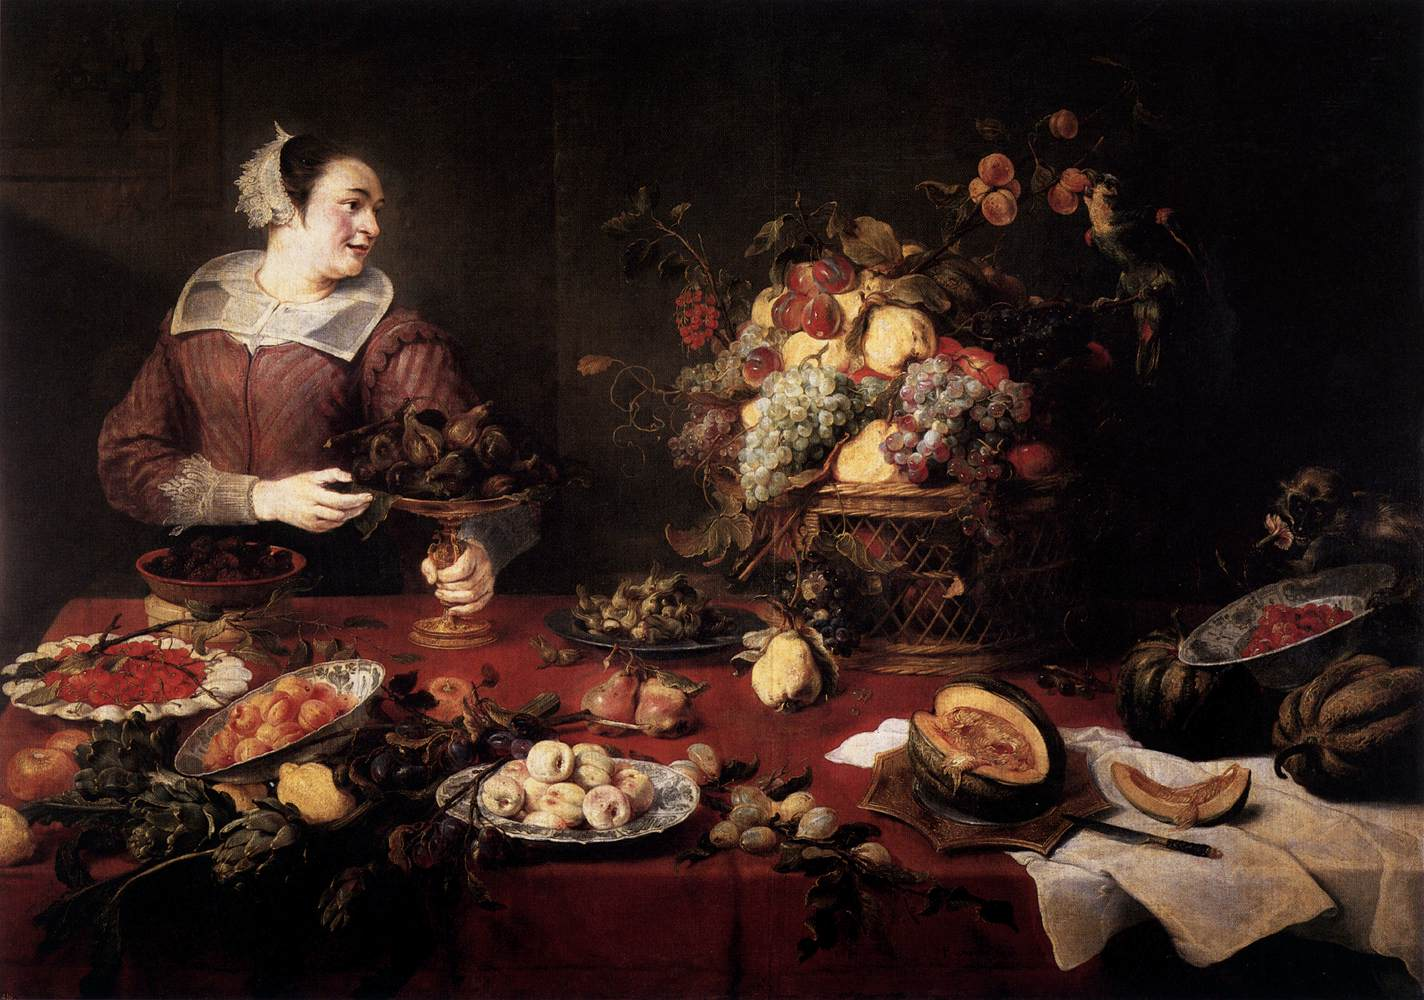 The painter Frans Snyders: biography, creativity, and interesting facts 75